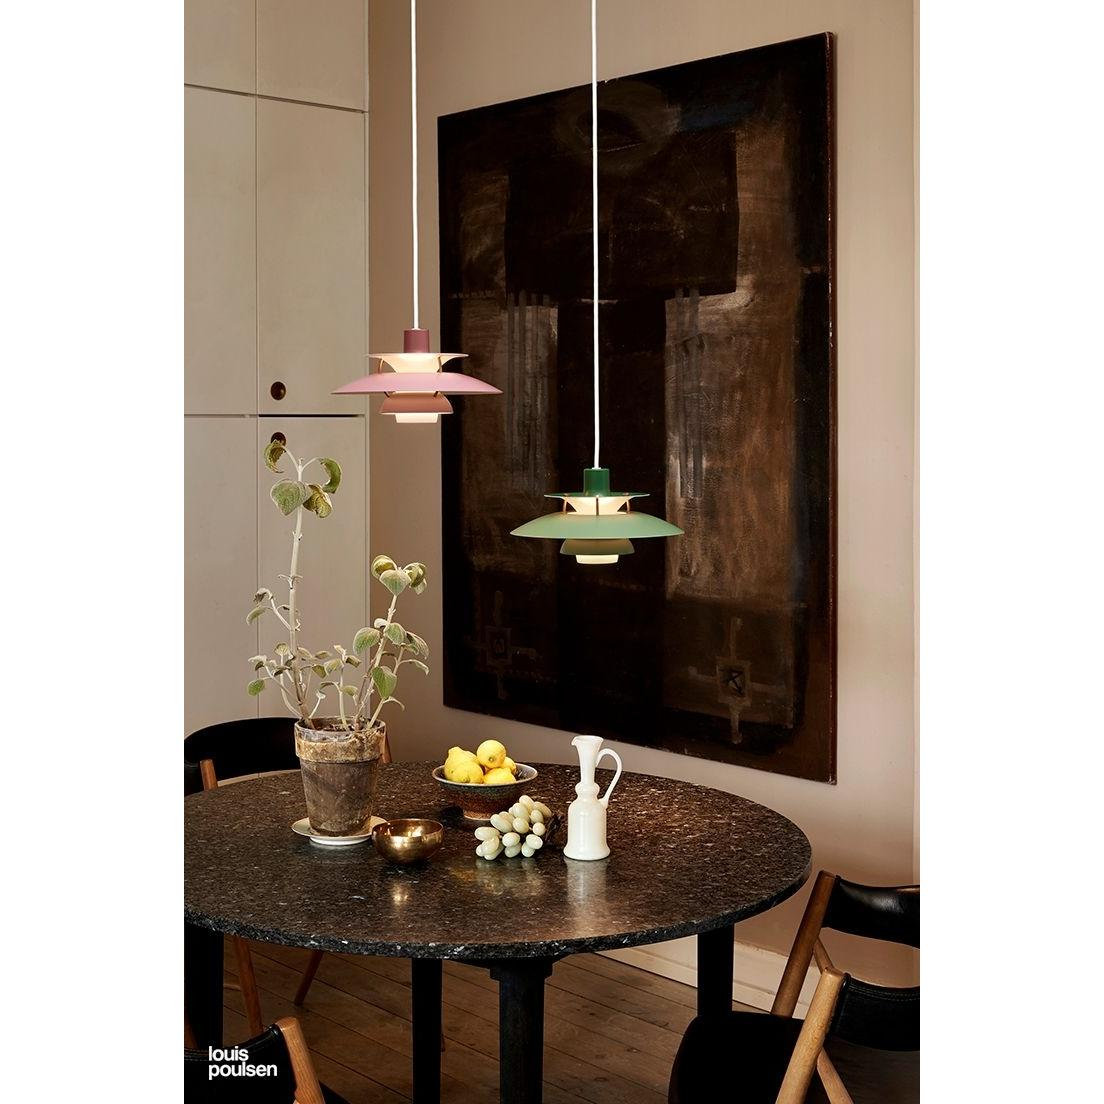 Ph 5 Louis Poulsen Ph 5 Mini Hanglamp Groen